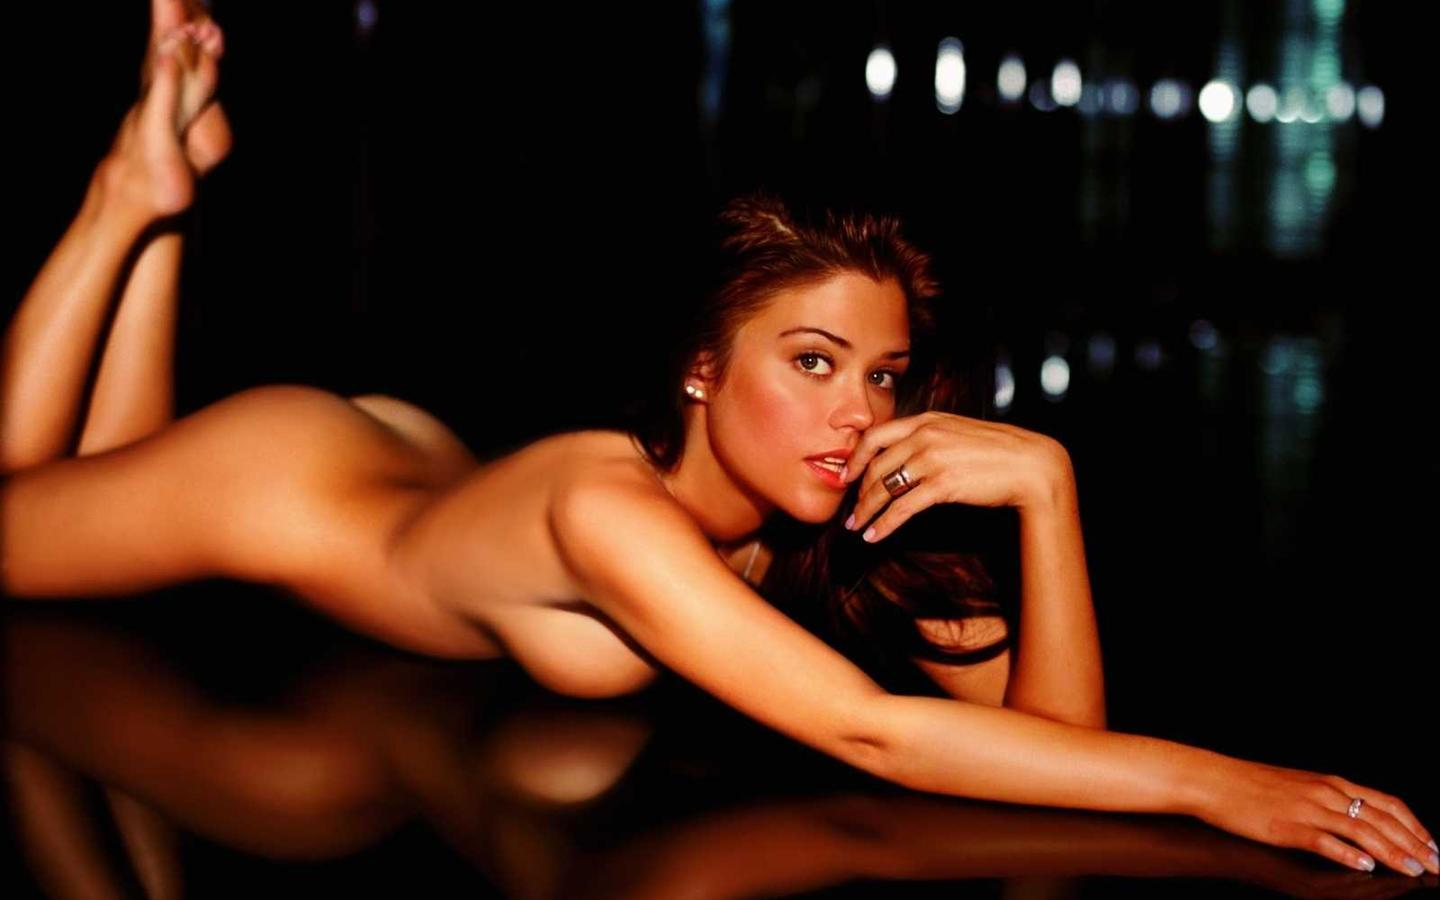 Susan Ward - Images Hot